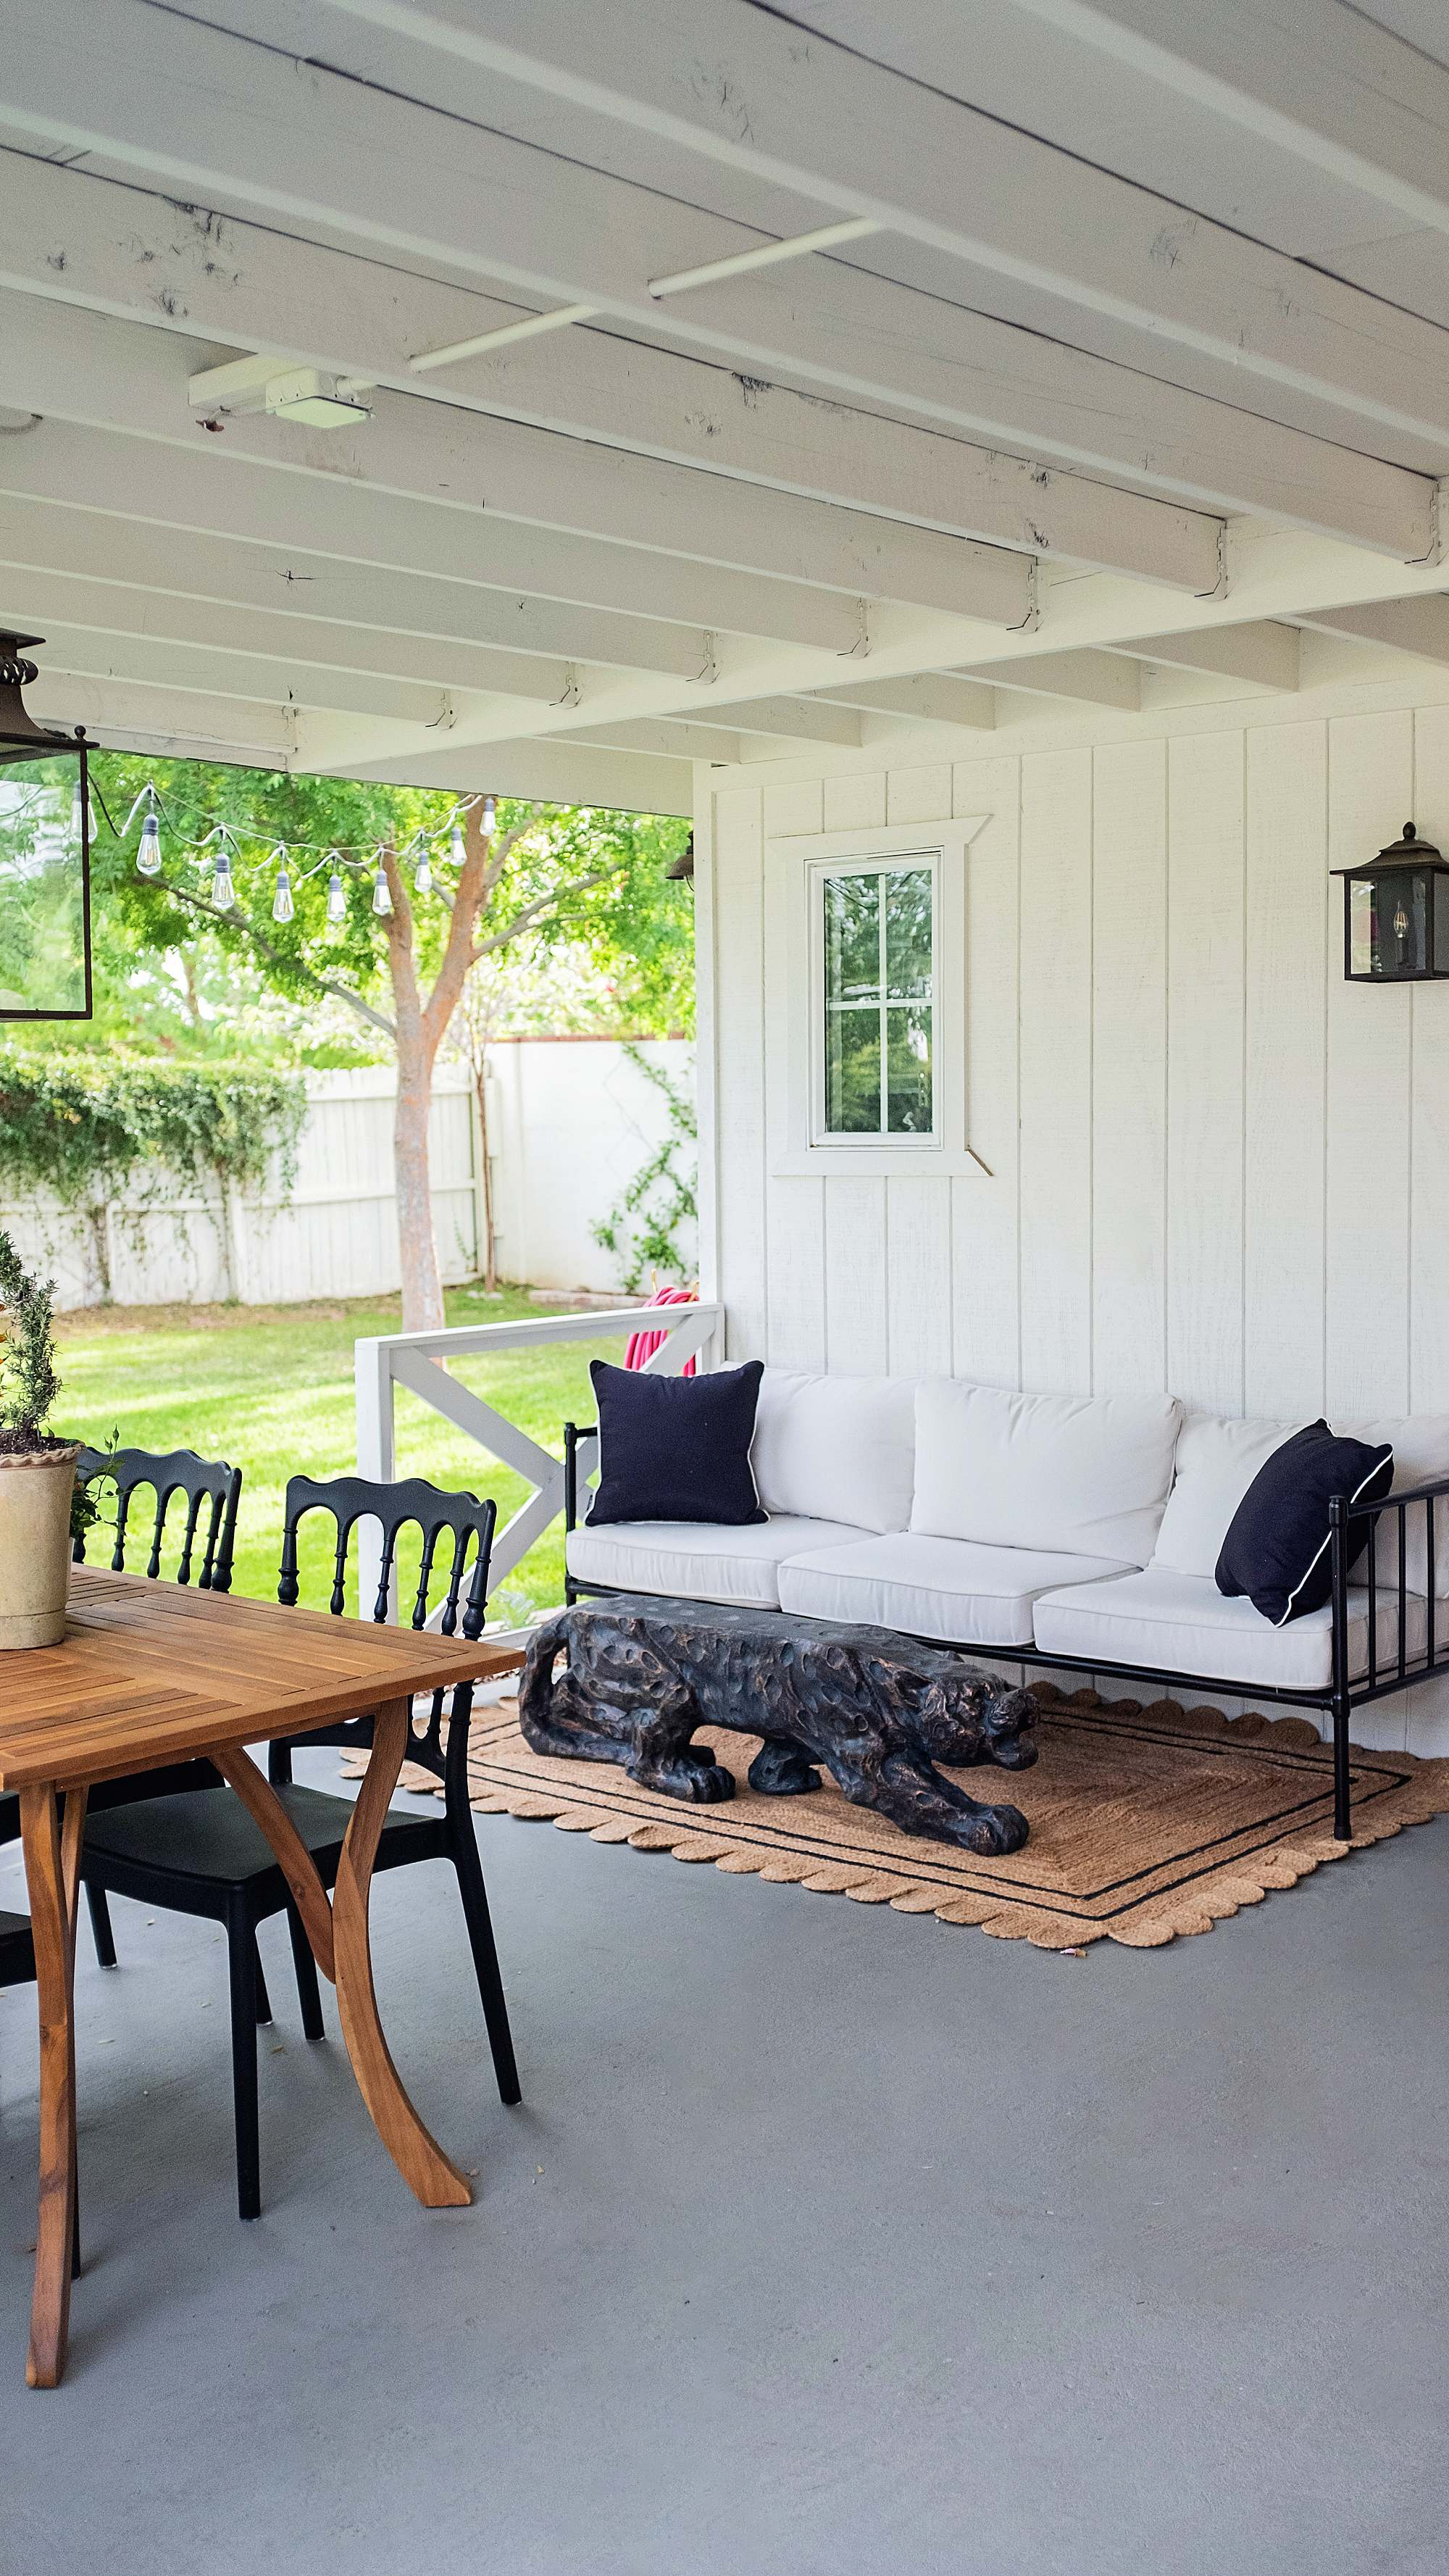 Grandmillennial style porch inspiration contemporary English garden white and black romantic feminine backyard porch vibe, scalloped jute rug